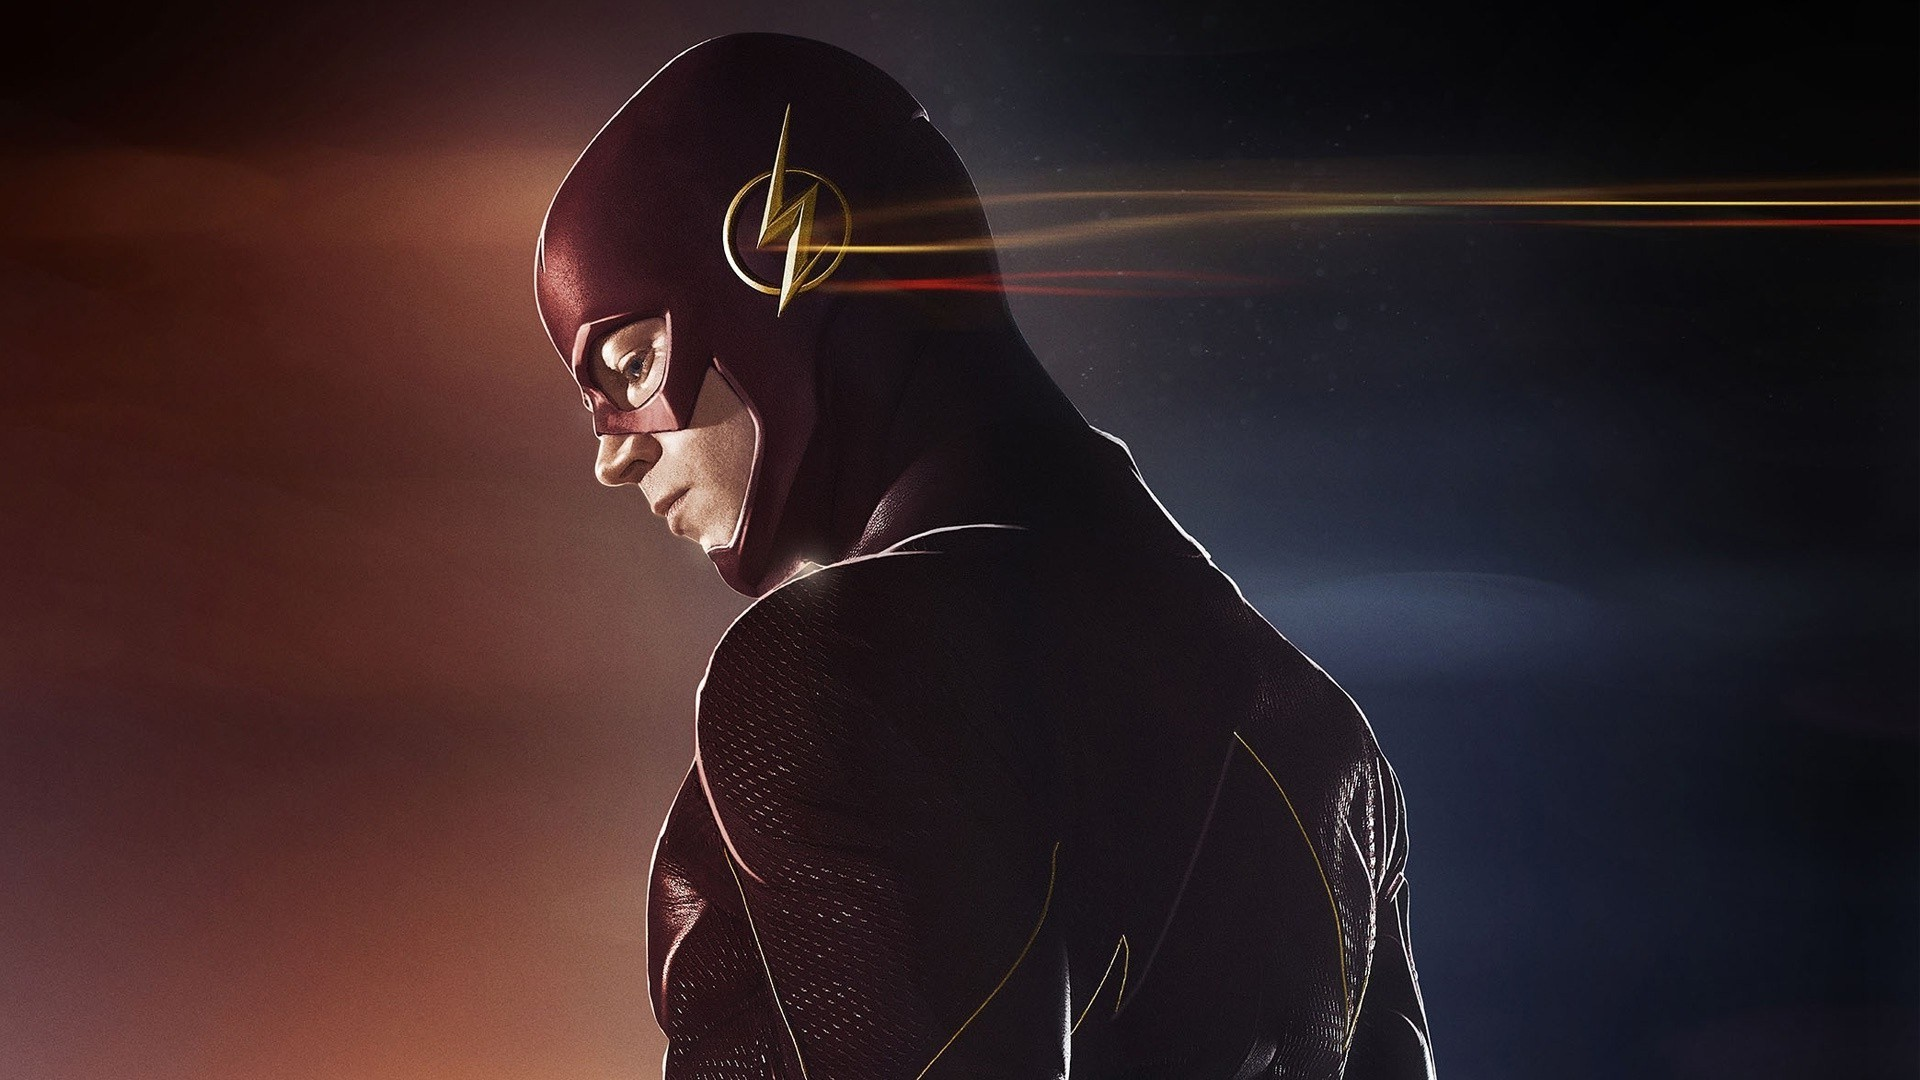 flash superhero wallpaper 66 images